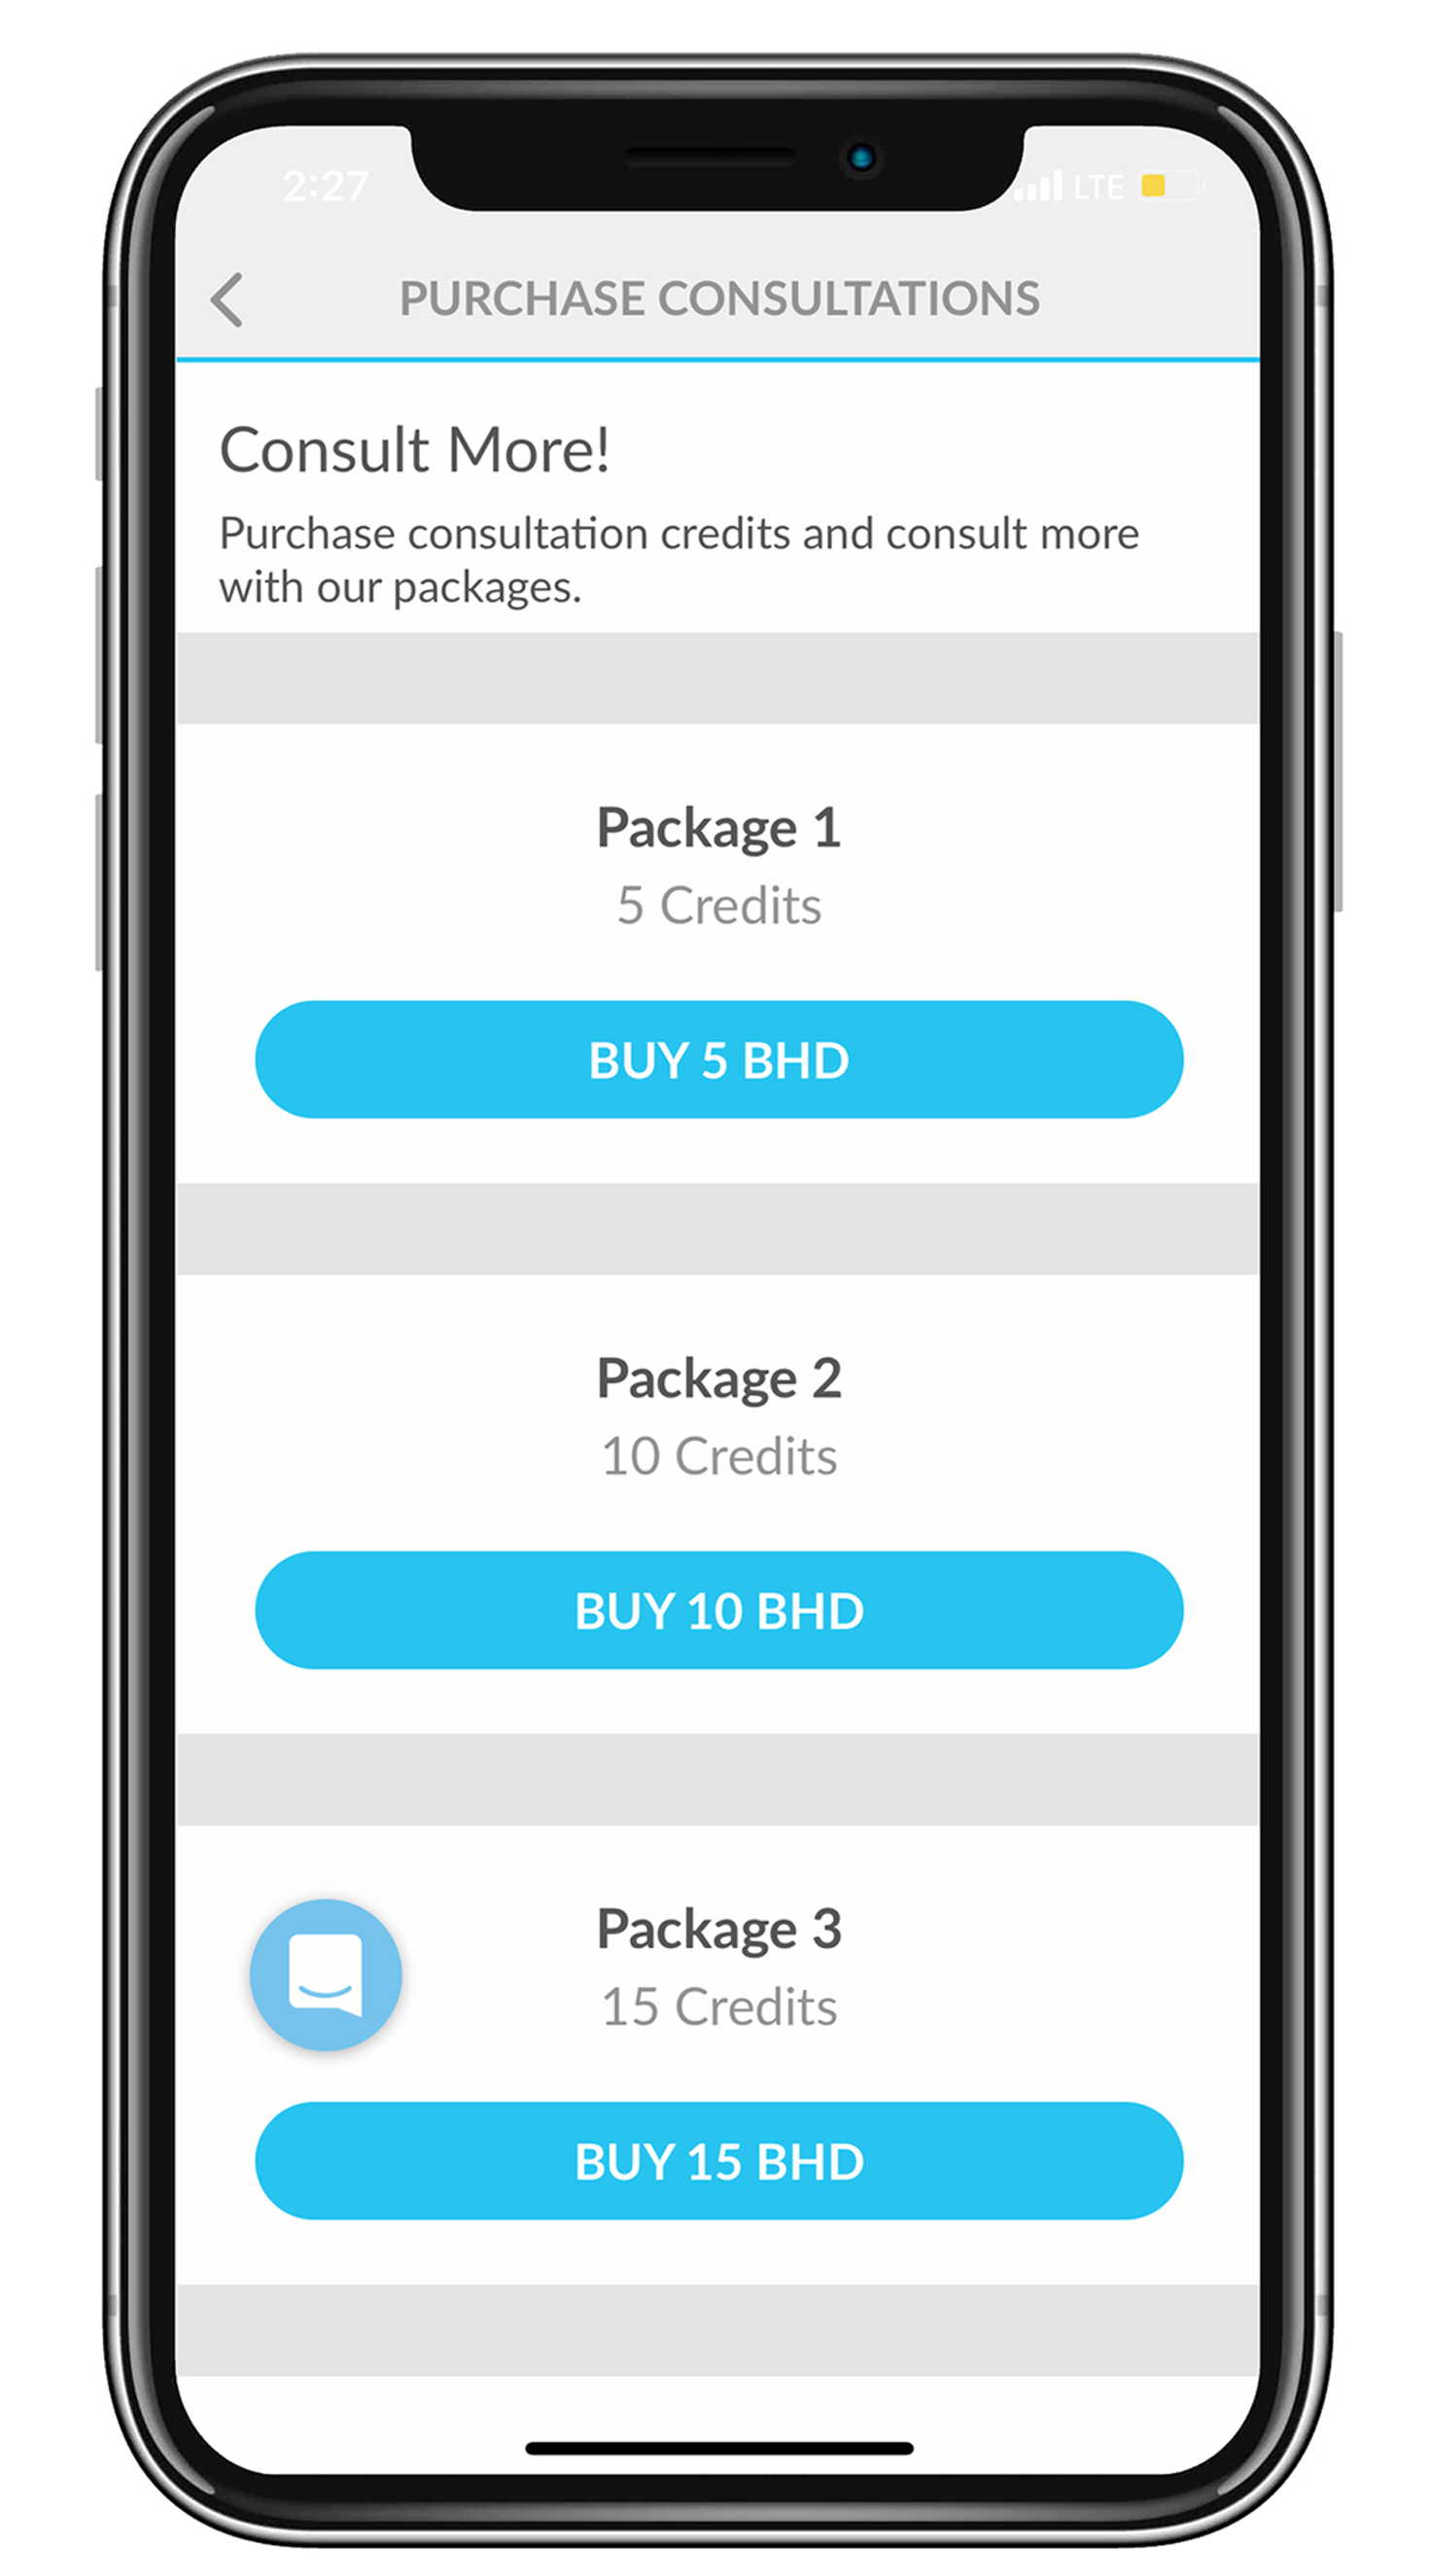 Card icon in profile page will prompt list of available packages for purchase using credit or debit card.